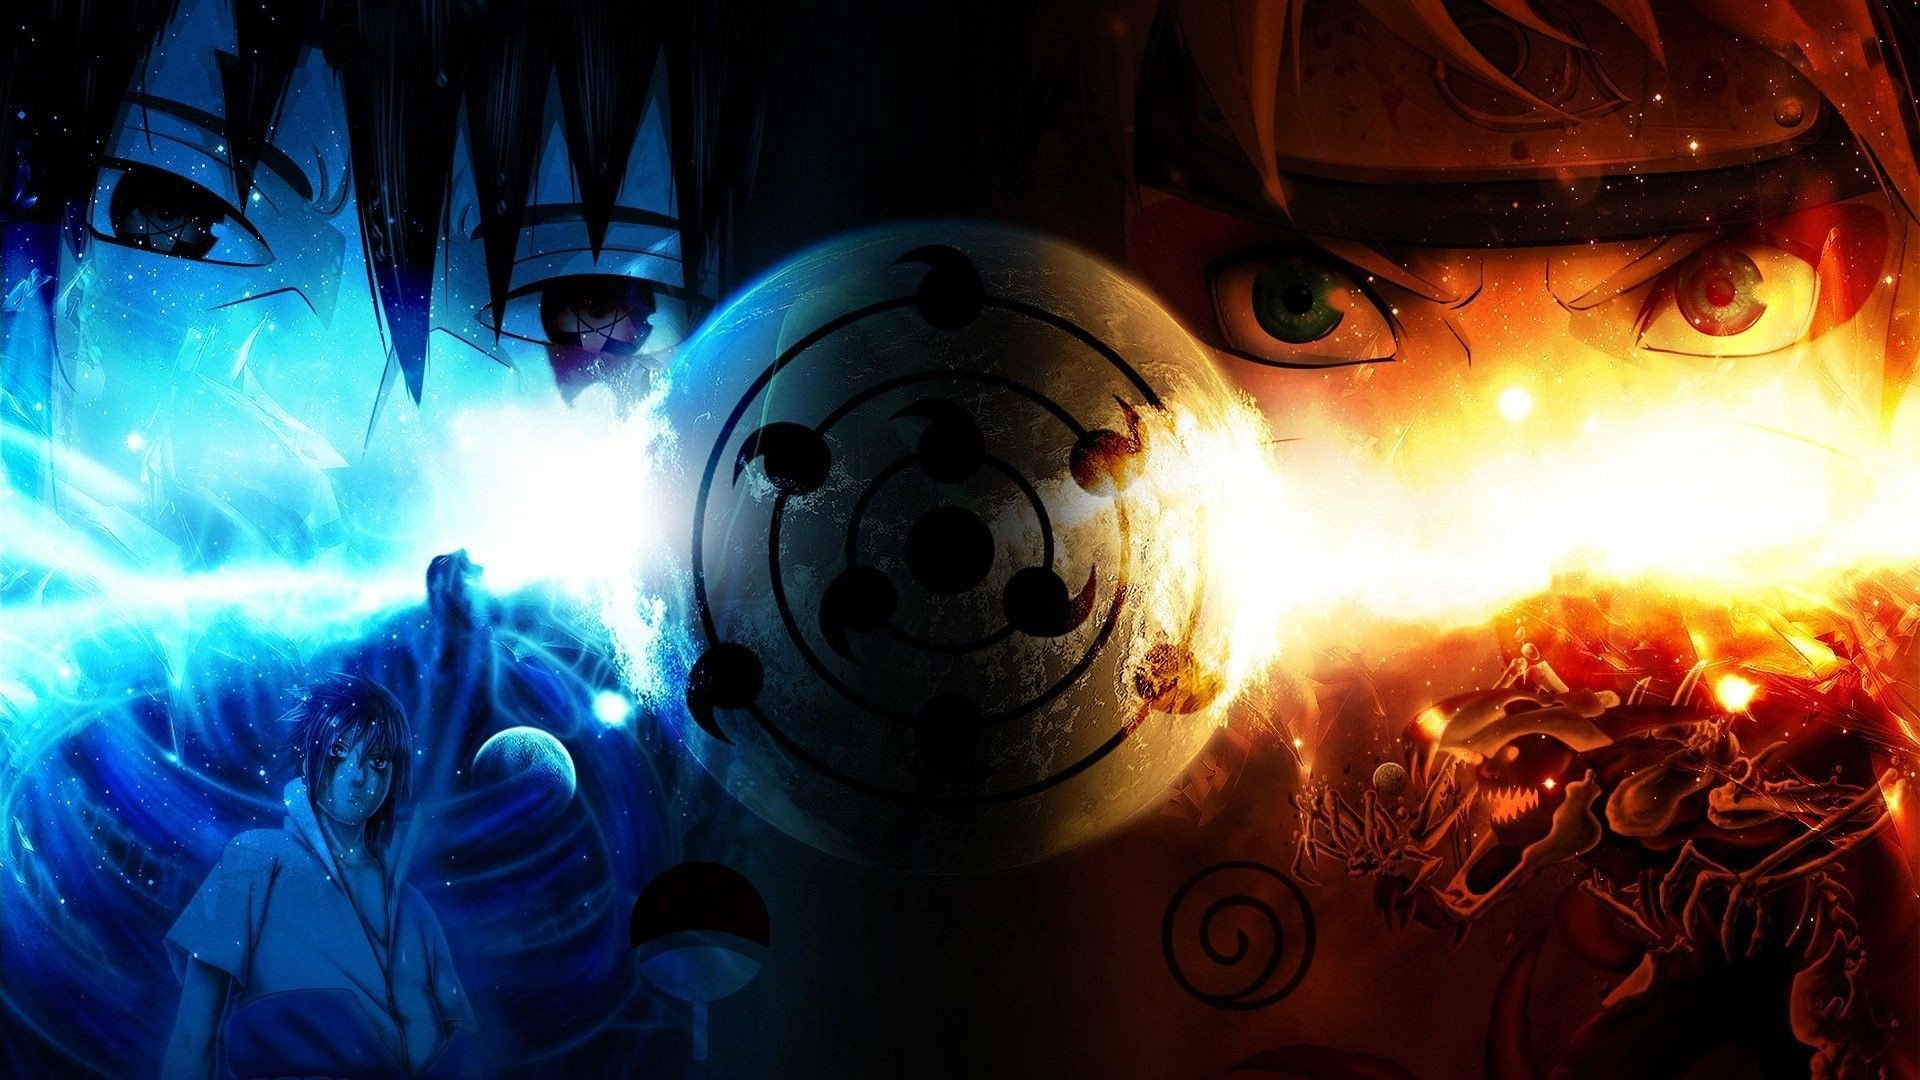 Naruto Fire And Ice HD Anime Wallpaper Desktop Wallpapers 4k High 1920x1080